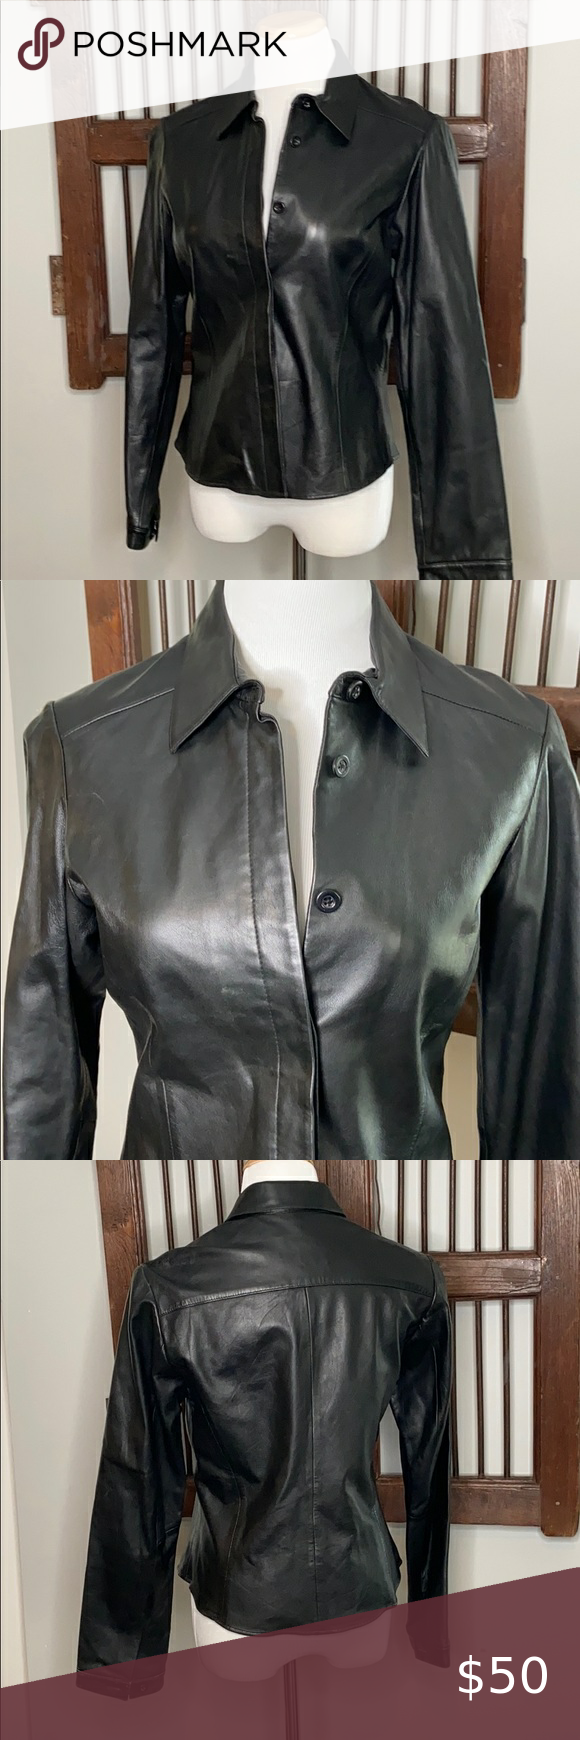 Vakko Sport 100 Leather Black Jacket With Buttons Leather Jacket Black Black Jacket Jackets